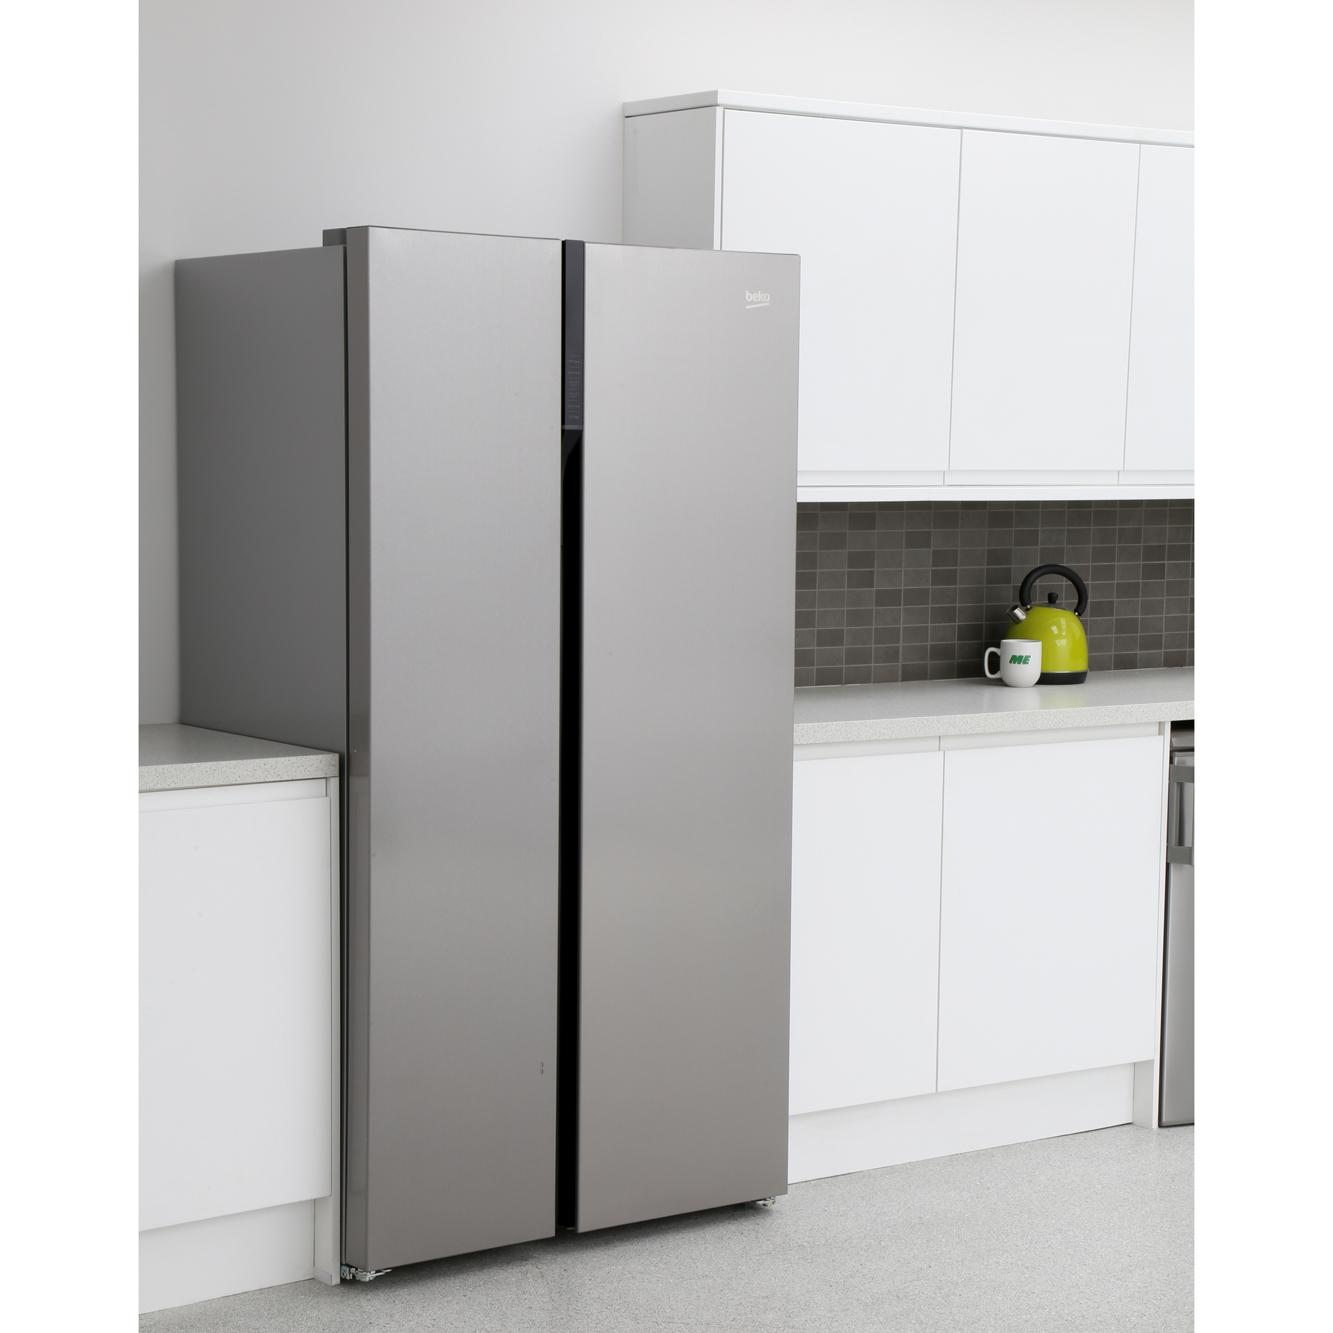 buy beko asgl142x american fridge freezer silver marks. Black Bedroom Furniture Sets. Home Design Ideas